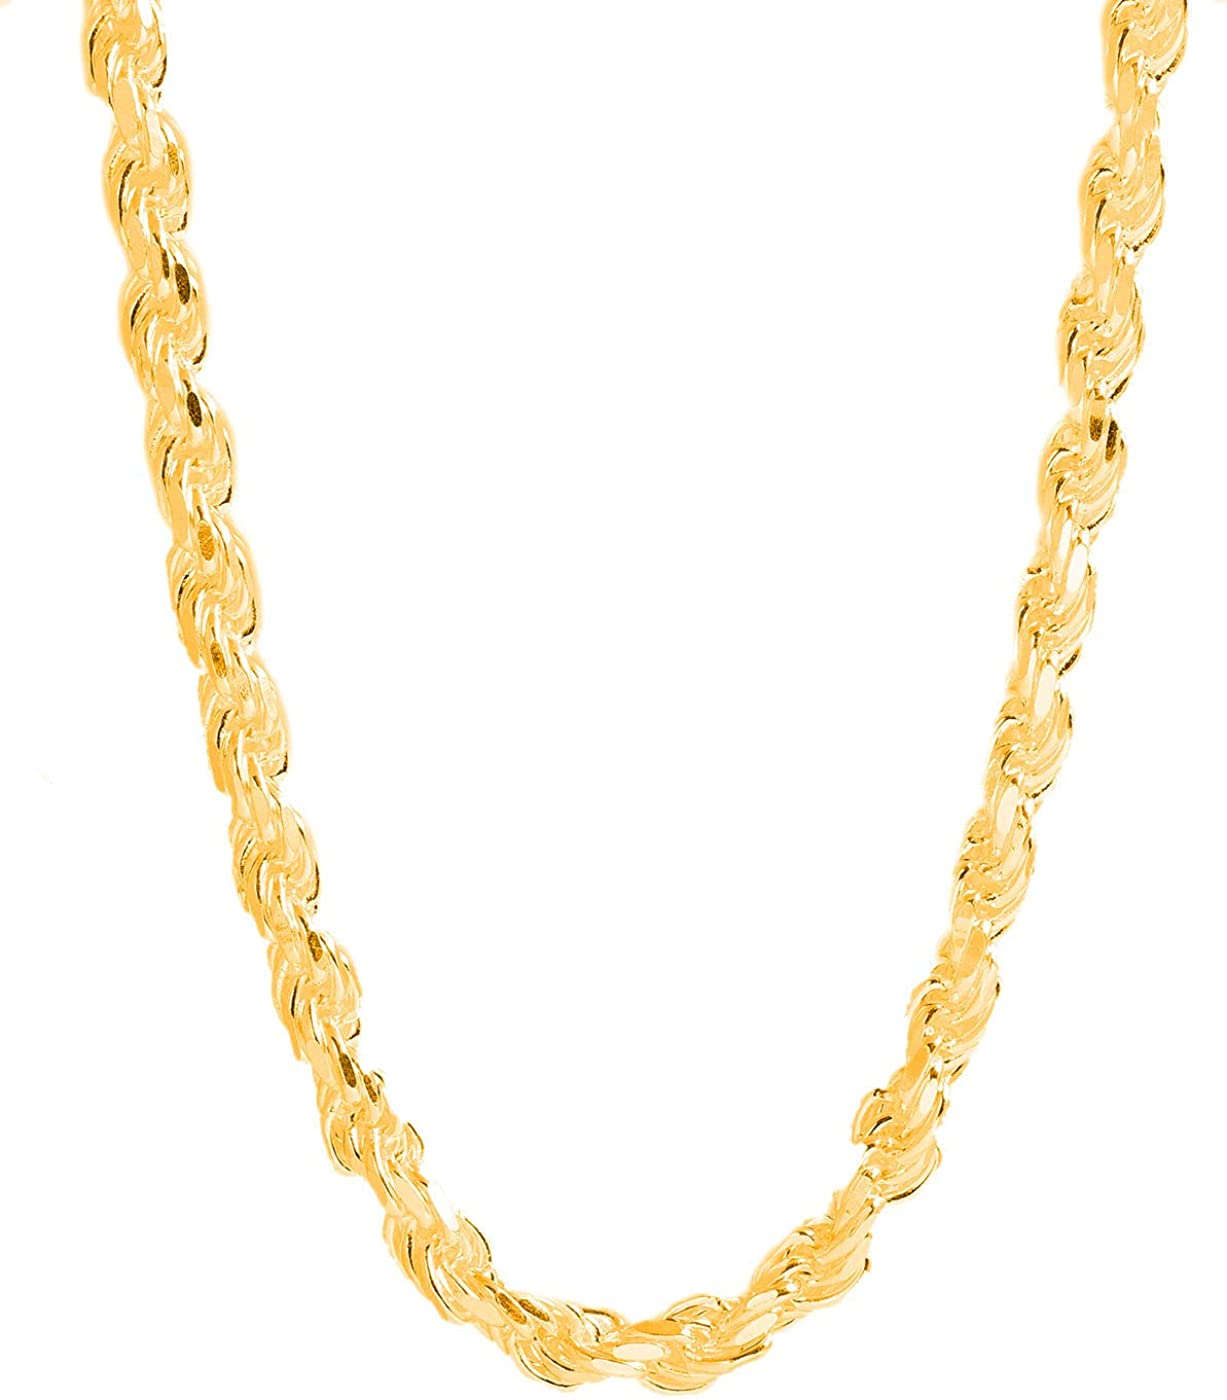 PORI JEWELERS Gold Ranking TOP12 Plated Sterling Rope Spasm price Diamond Silver Chain Cut